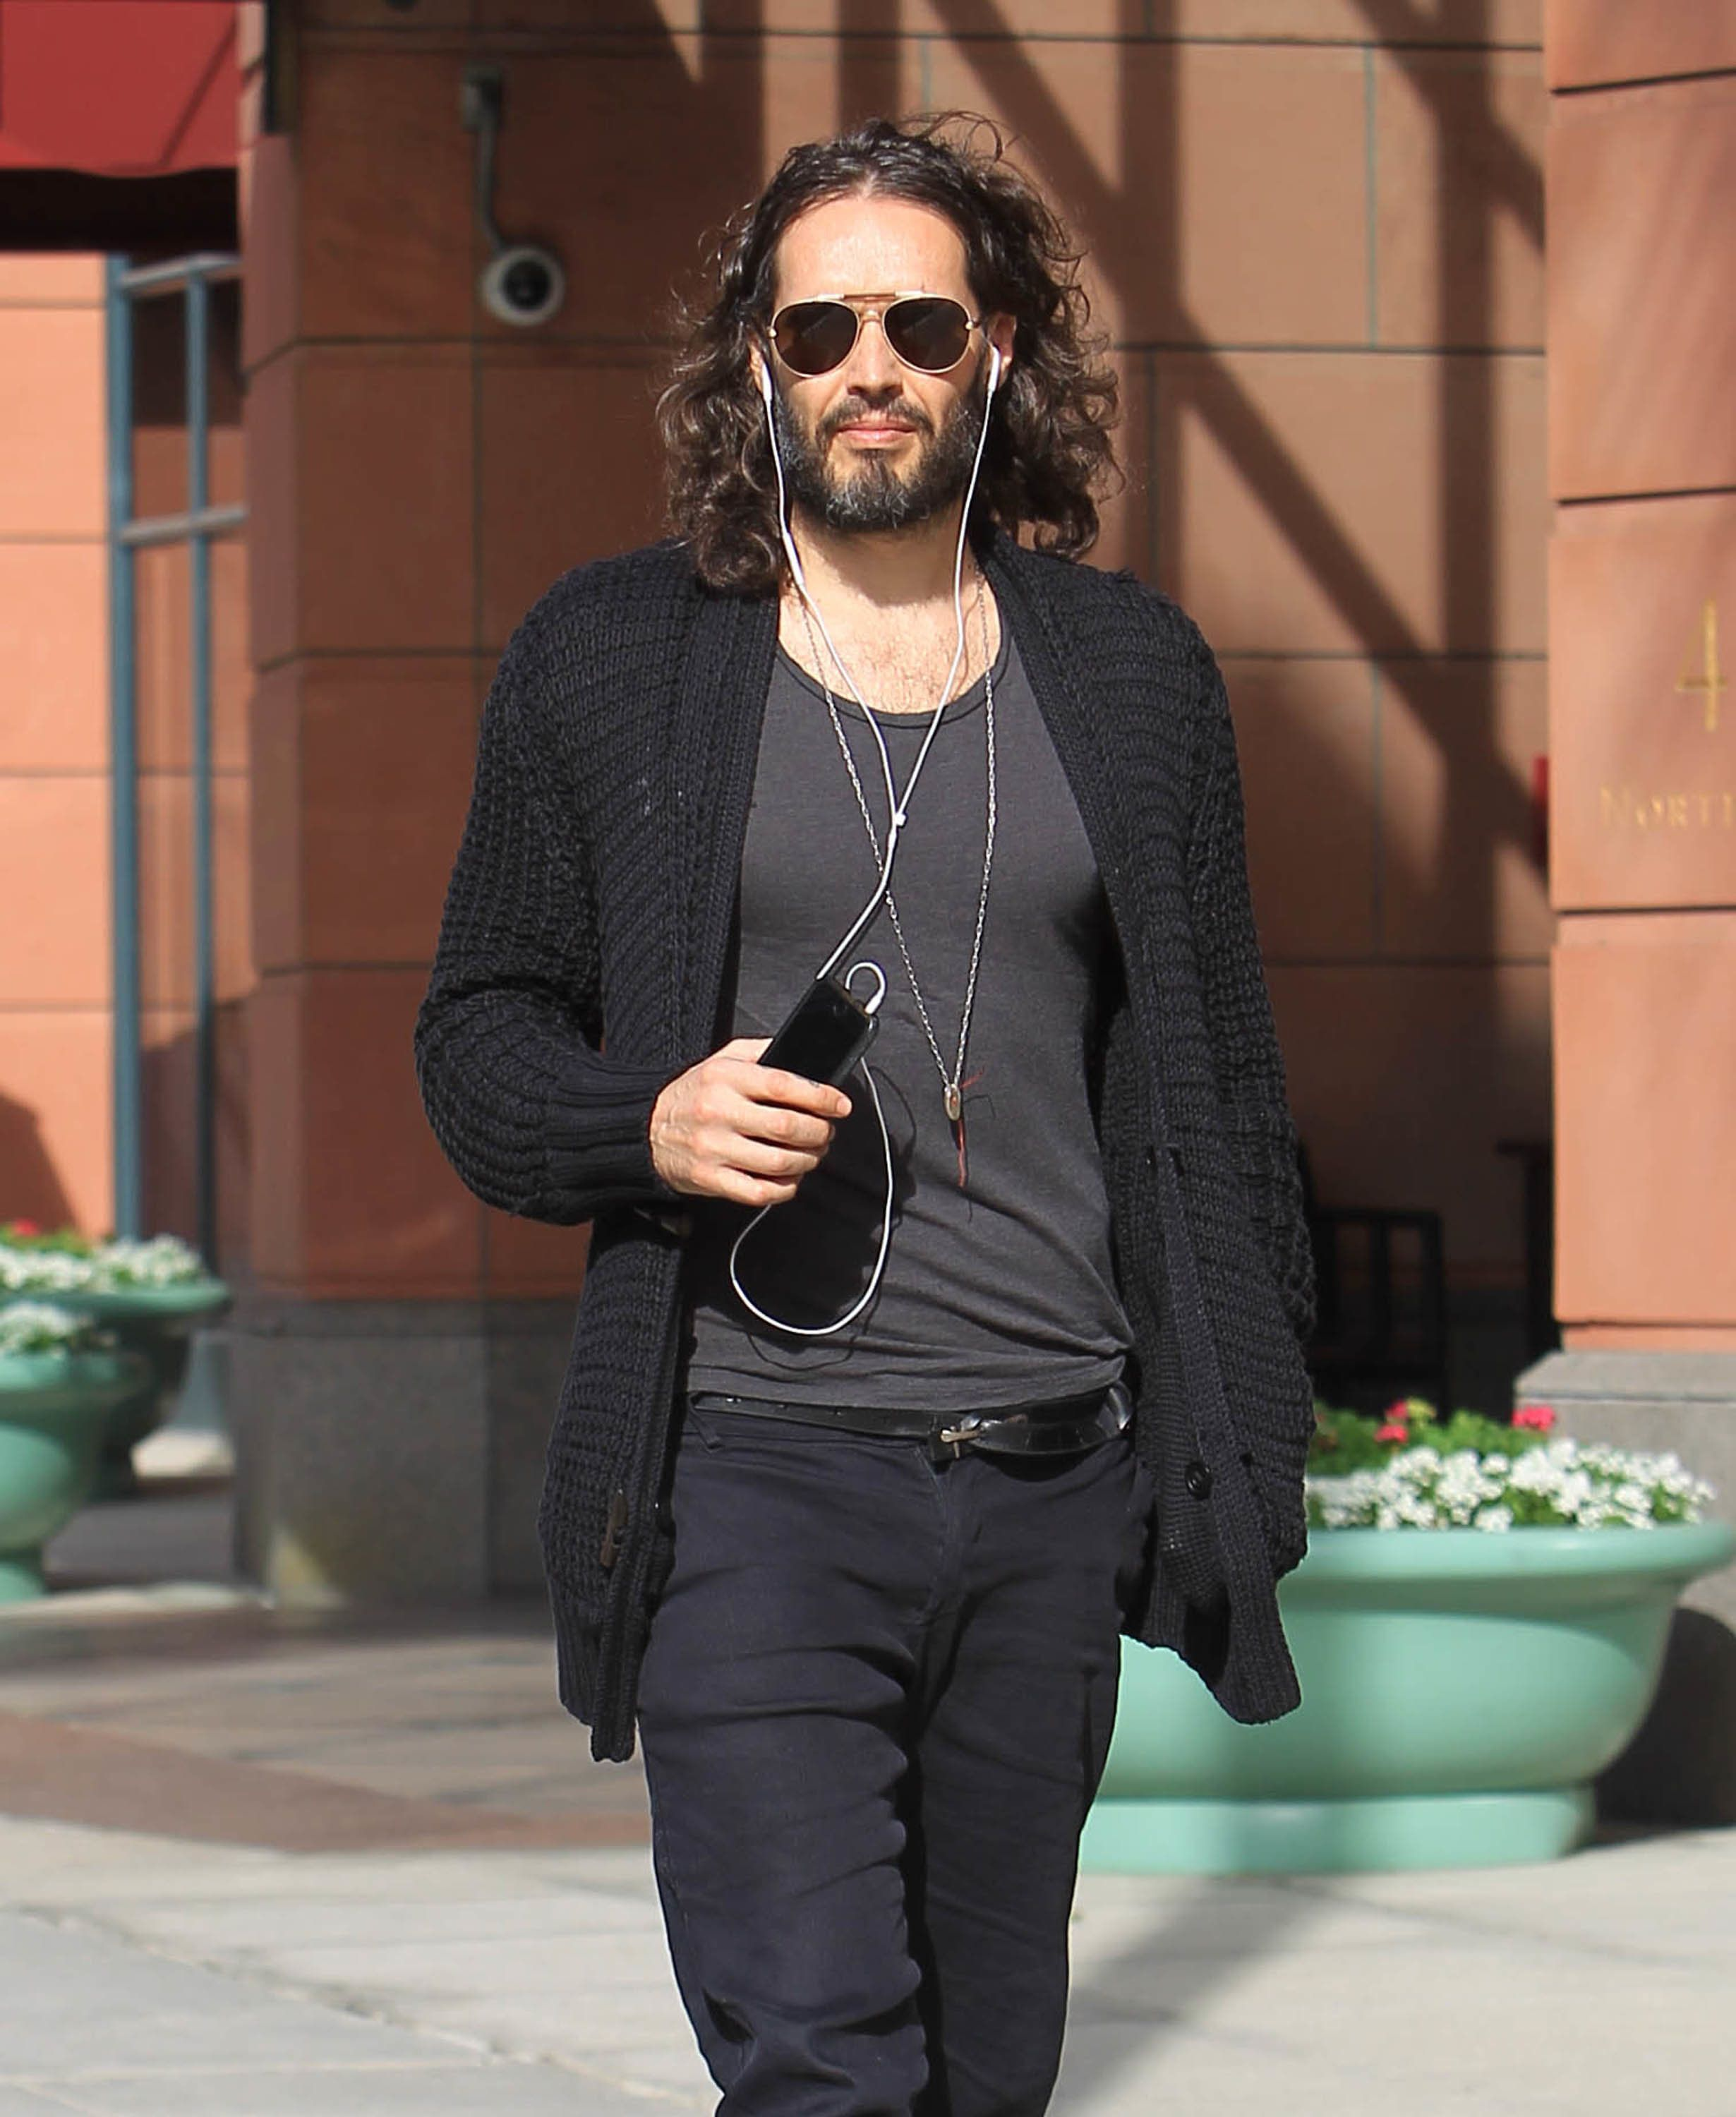 Russell Brand's Parenting Views Labelled 'Sexist' After Nappies